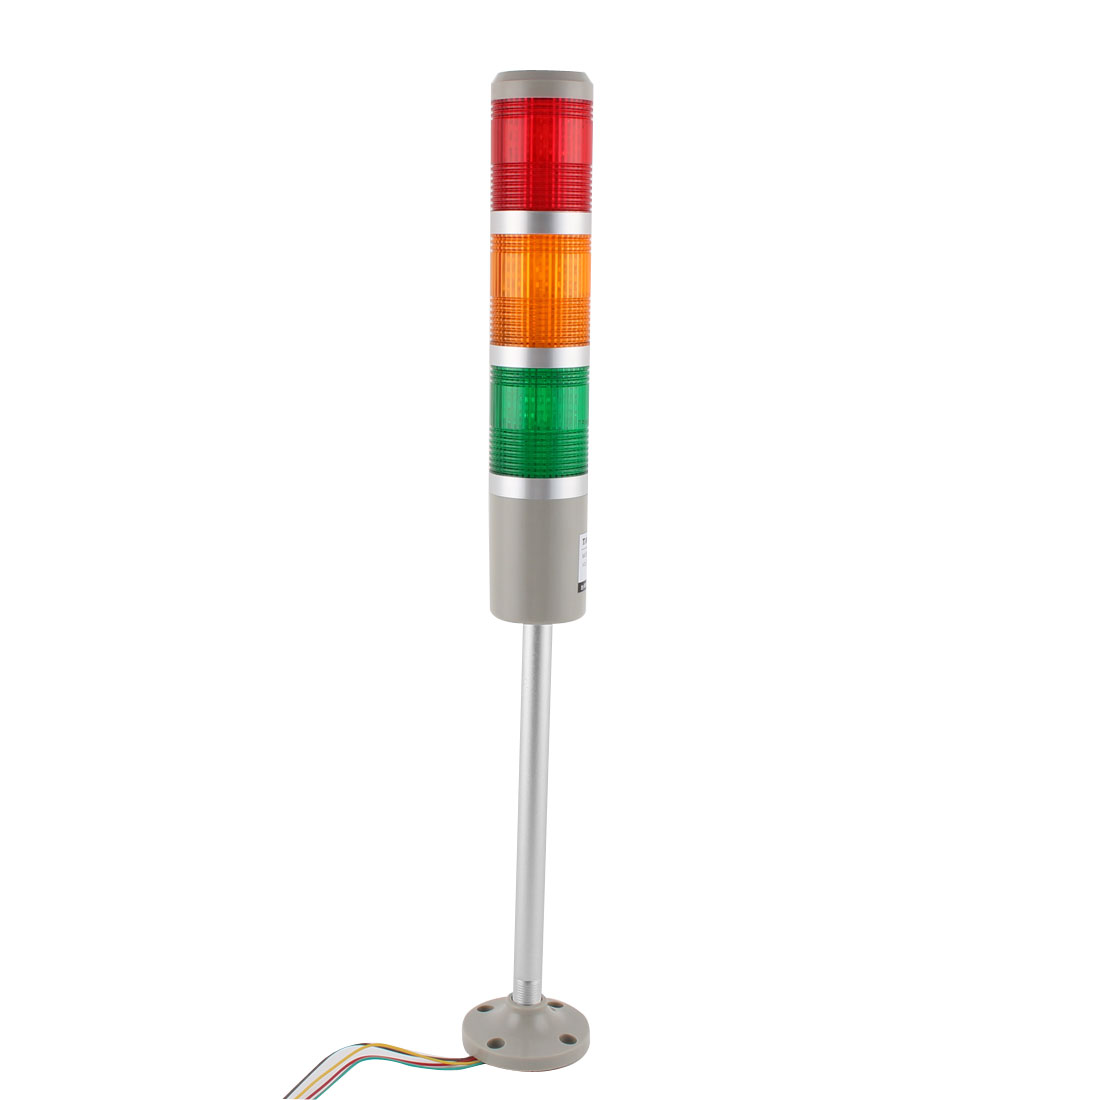 TB50-3T-D DC 24V Red Green Yellow Signal Tower Lamp Industrial Warning Stack Light